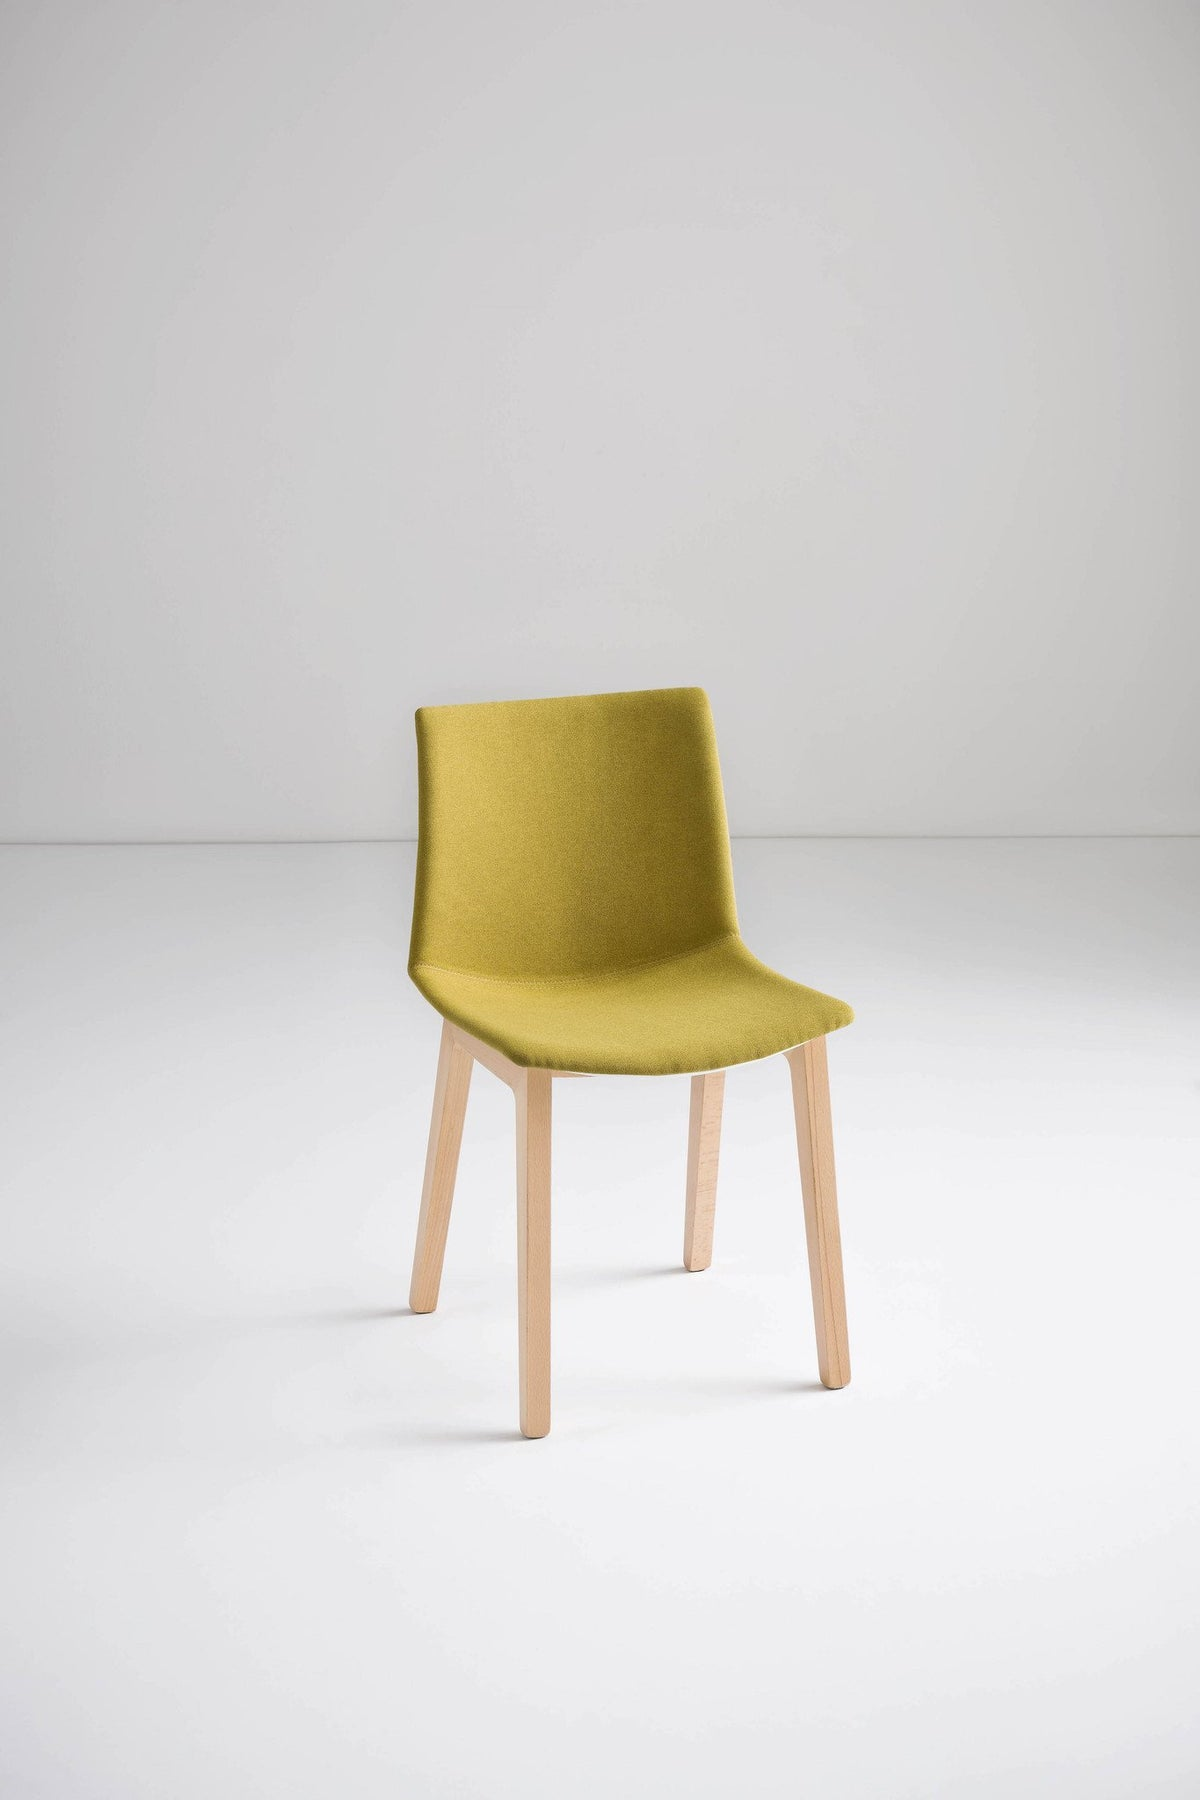 Kanvas Front Side Chair c/w Wood Legs-Gaber-Contract Furniture Store